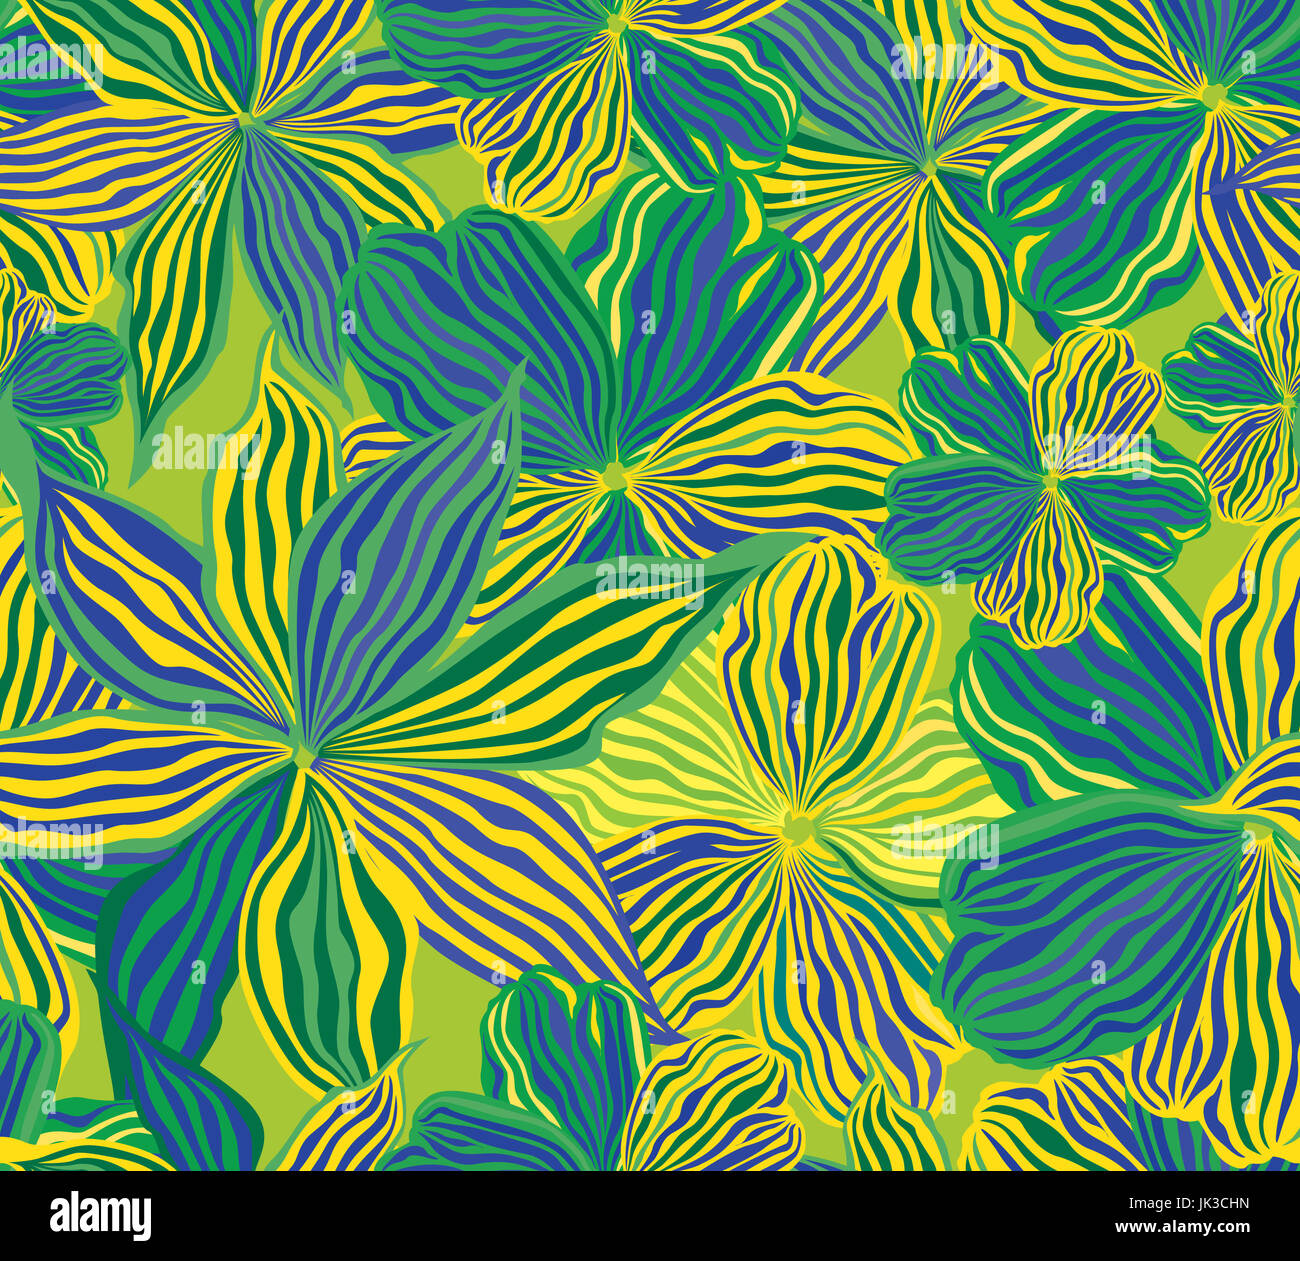 Floral seamless pattern with tropical flowers in hawaiian style floral seamless pattern with tropical flowers in hawaiian style izmirmasajfo Gallery